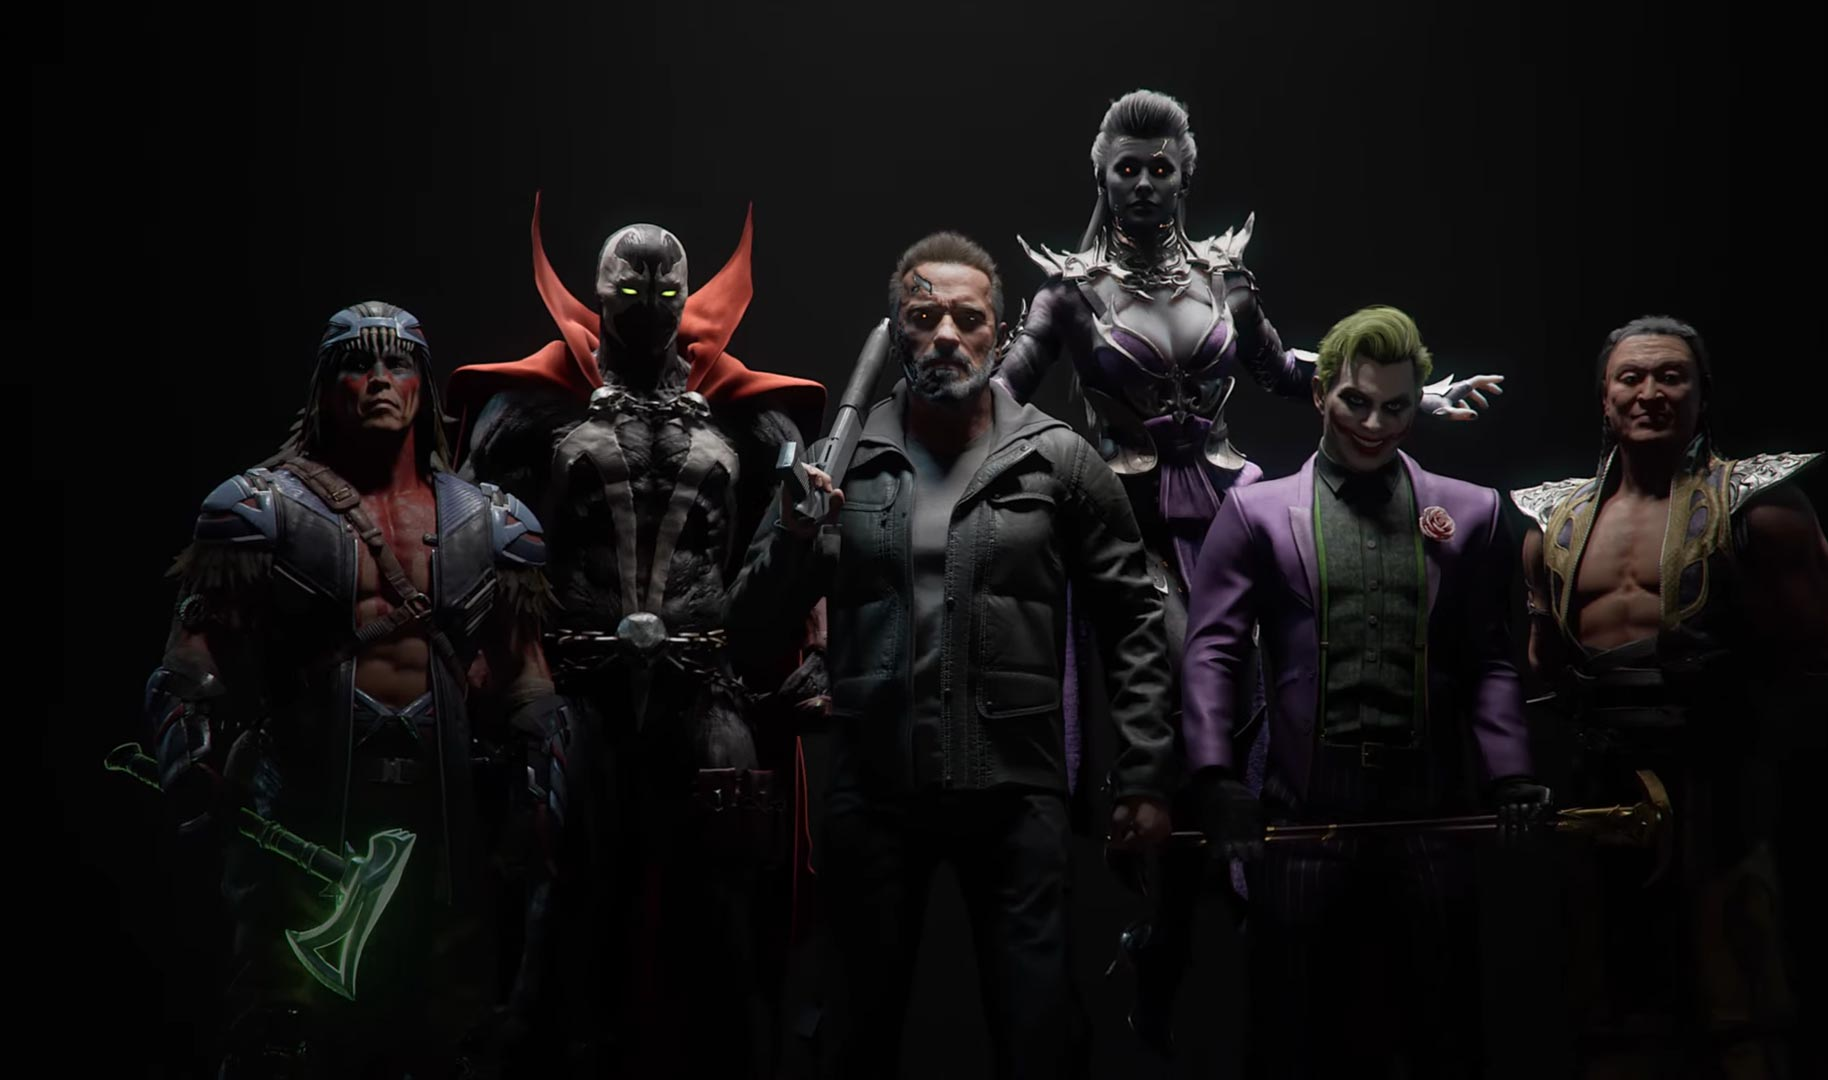 Kombat Pack trailer 7 out of 7 image gallery